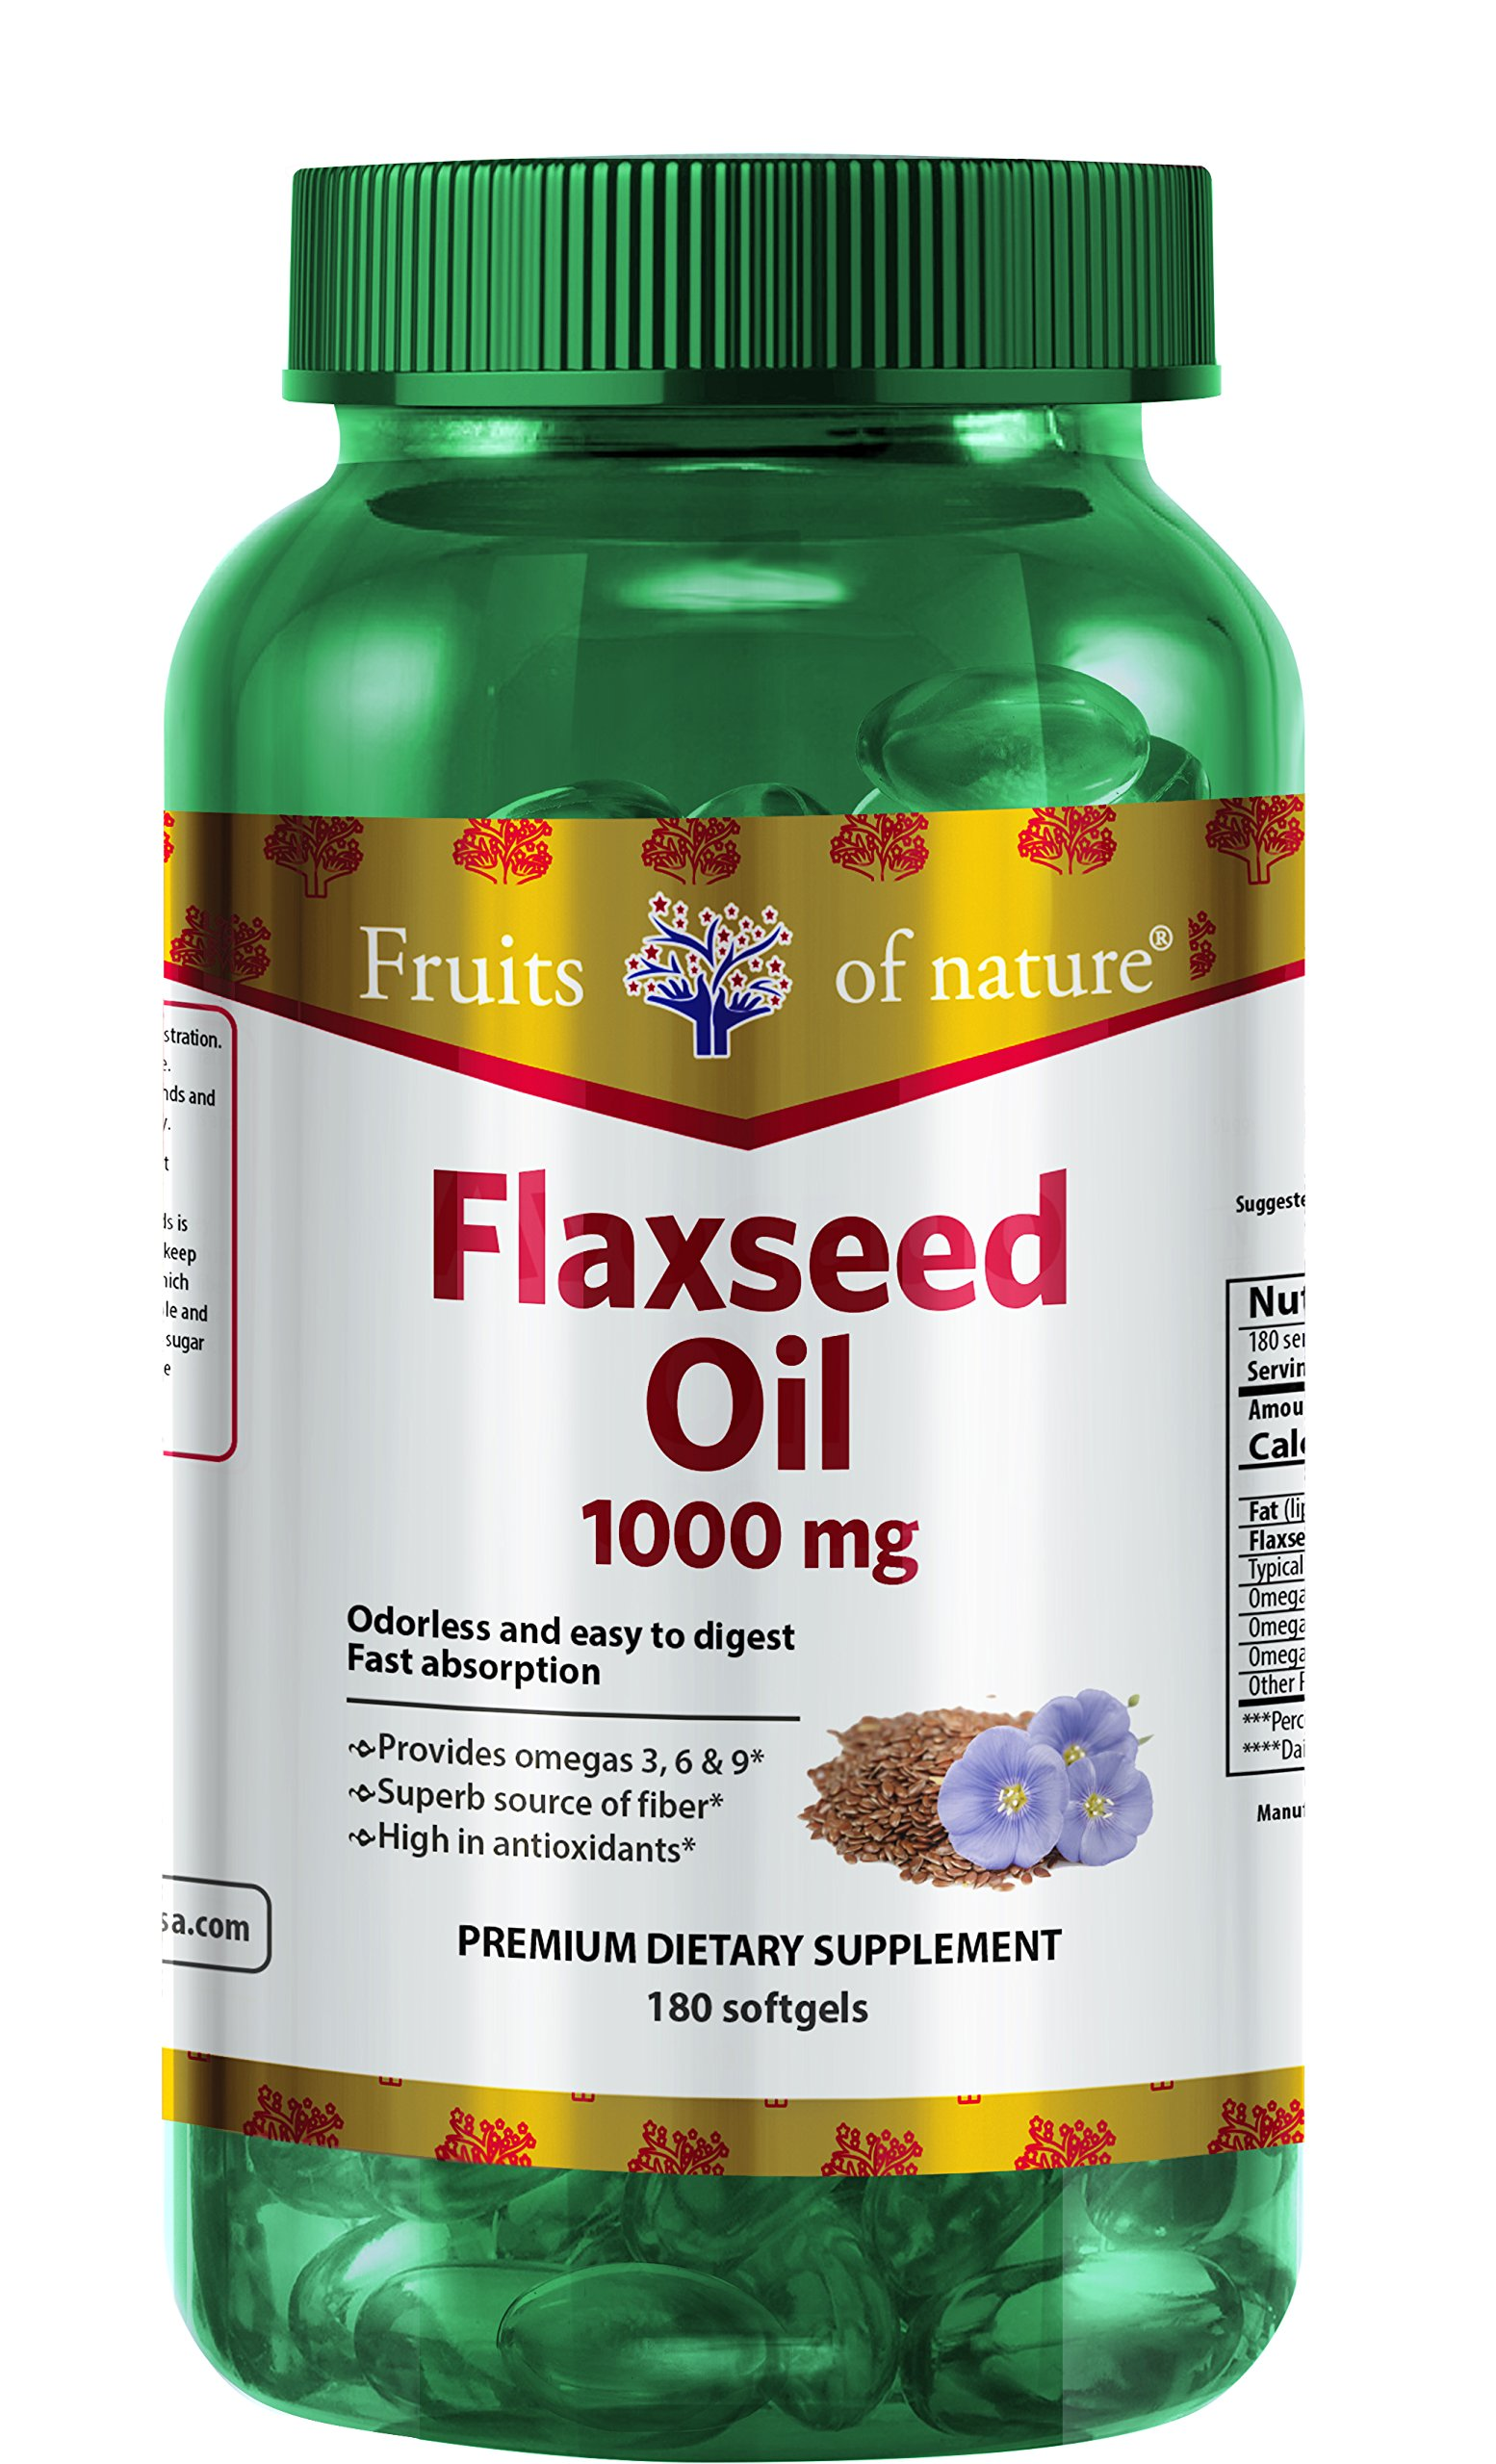 Flaxseed Oil Capsules 1000 mg - Organic, Extra Virgin, and Cold Pressed Quick Release softgels, Omega 3+6+9 - Premium Dietary Supplement - by Fruits of Nature.